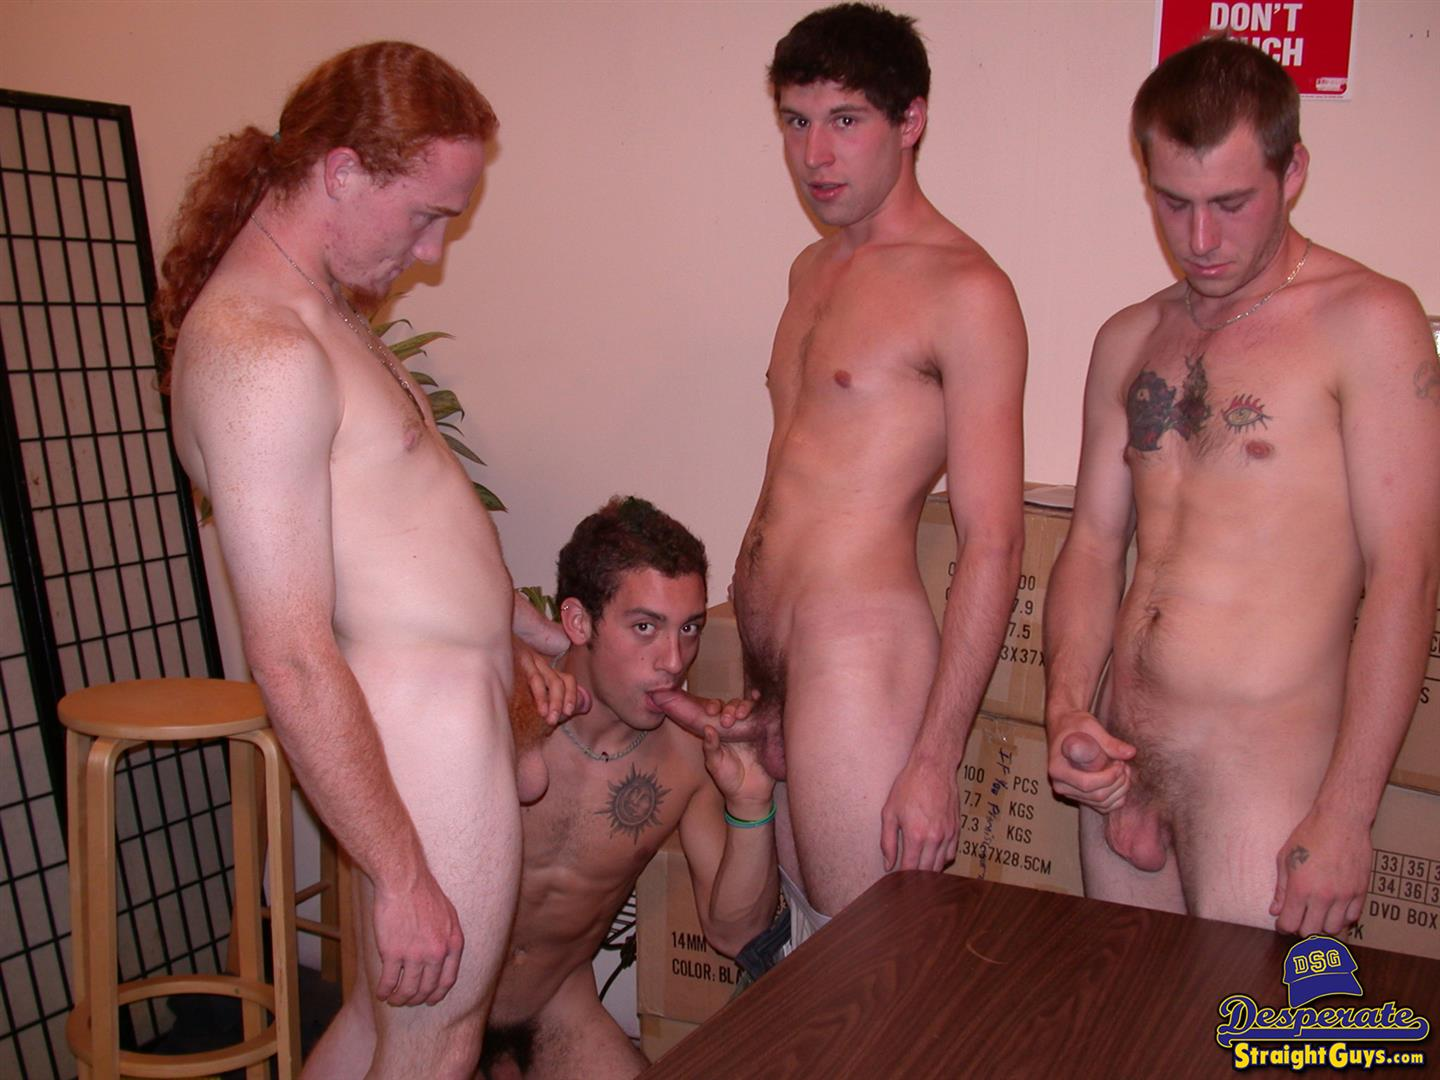 are not strip tease and eating pussy were visited simply